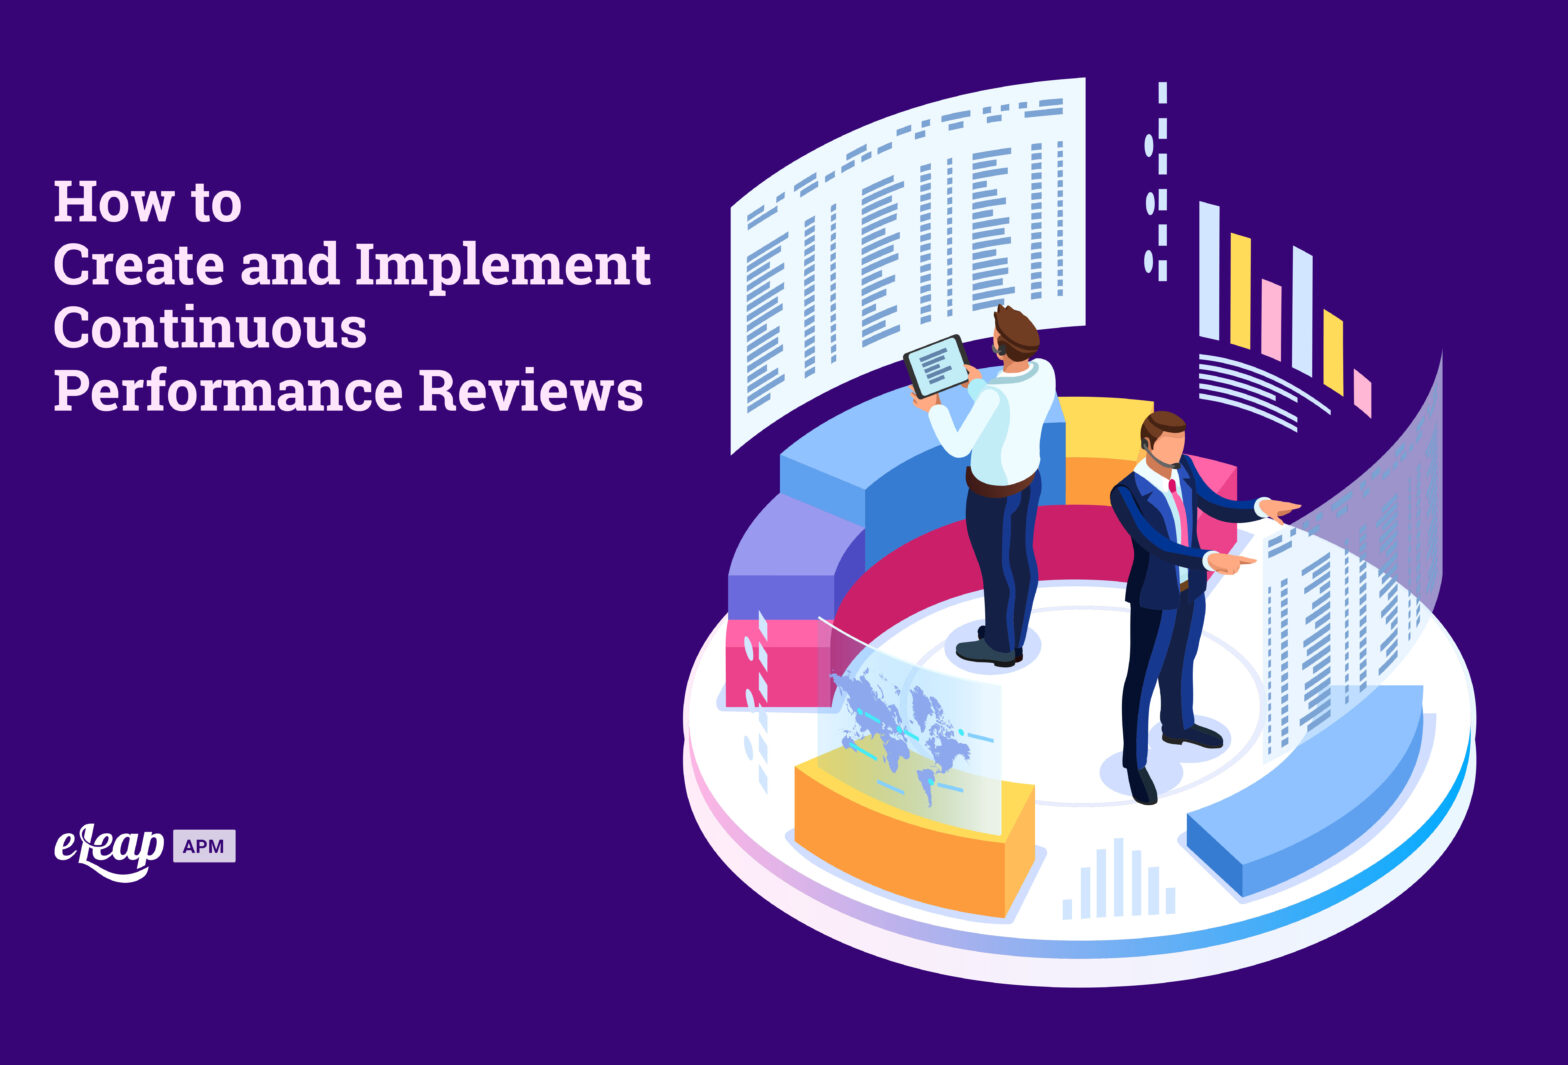 How to Create and Implement Continuous Performance Reviews